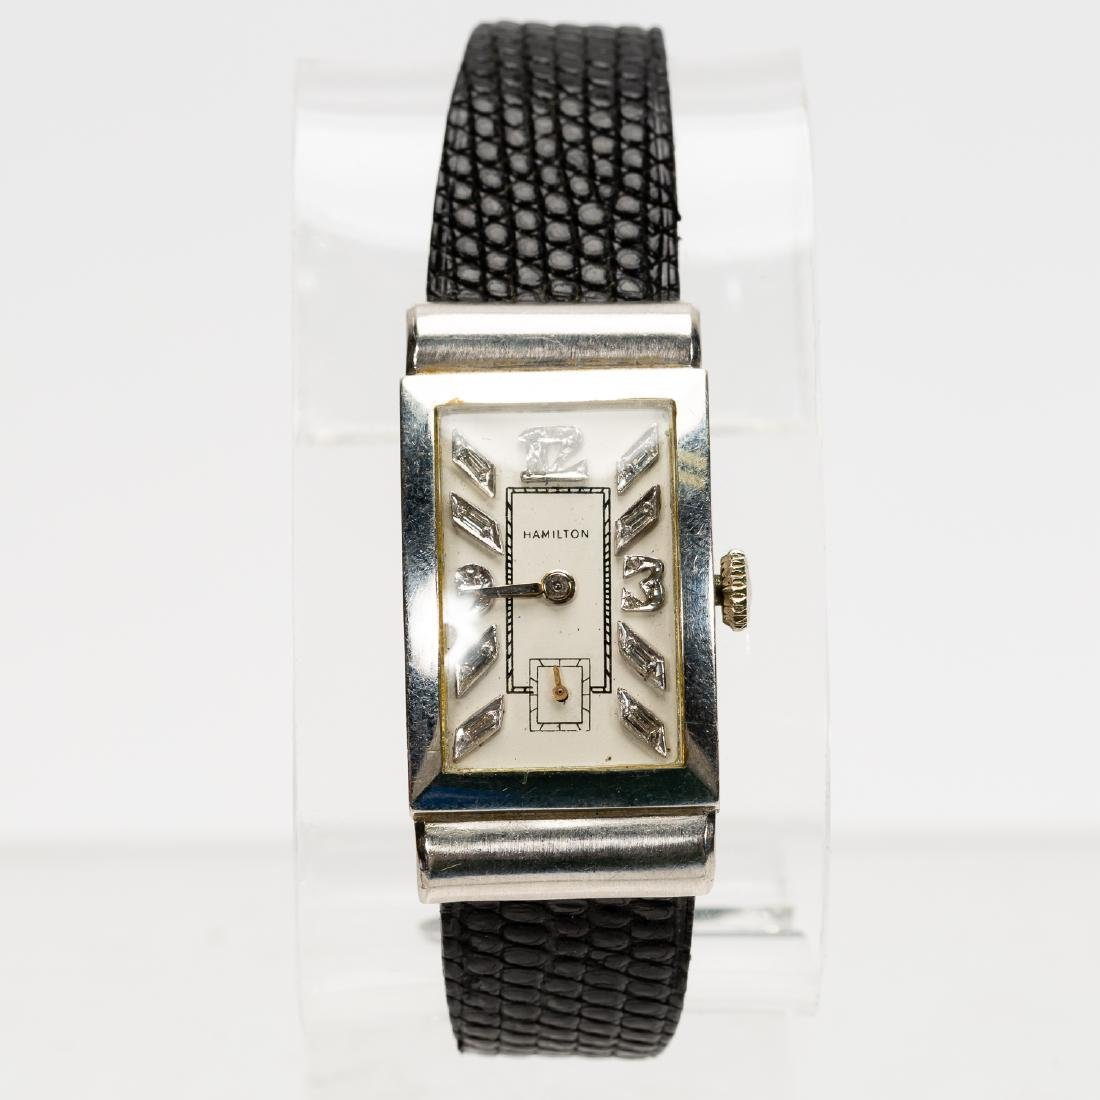 Hamilton Platinum & Diamond Wrist Watch